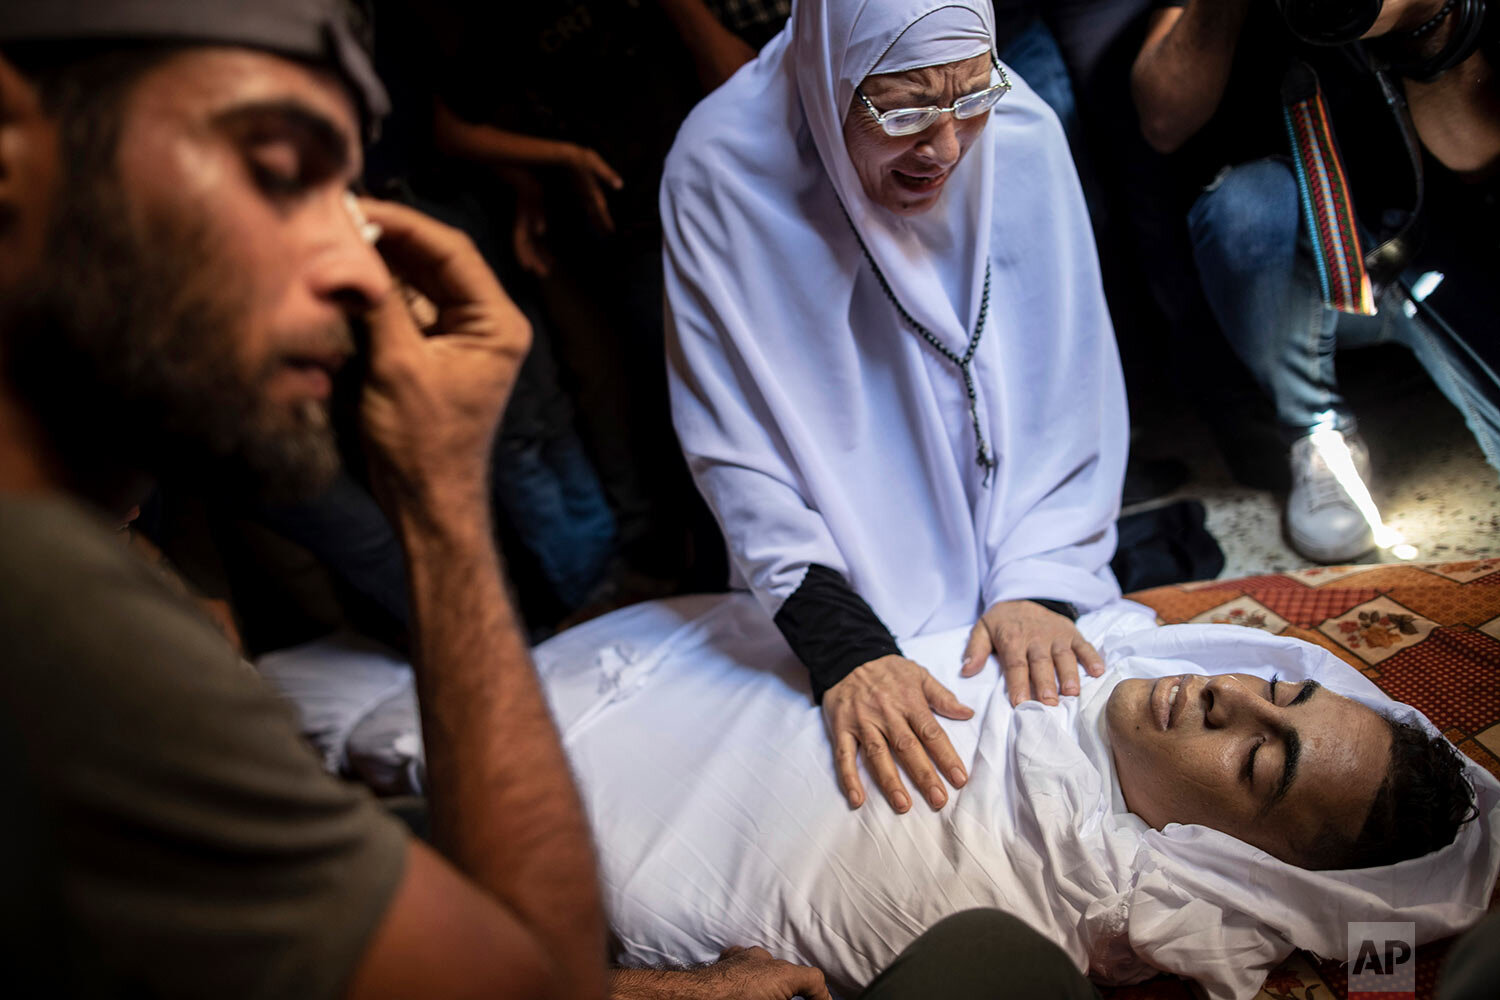 Relatives of Saher Othman, 20, mourn over his body in the family home during his funeral in Rafah refugee camp, southern Gaza Strip, Saturday, Sept. 28, 2019. Gaza's Health Ministry says Othman has been killed by Israeli gunfire during protests along Gaza-Israel border. (AP Photo/Khalil Hamra)